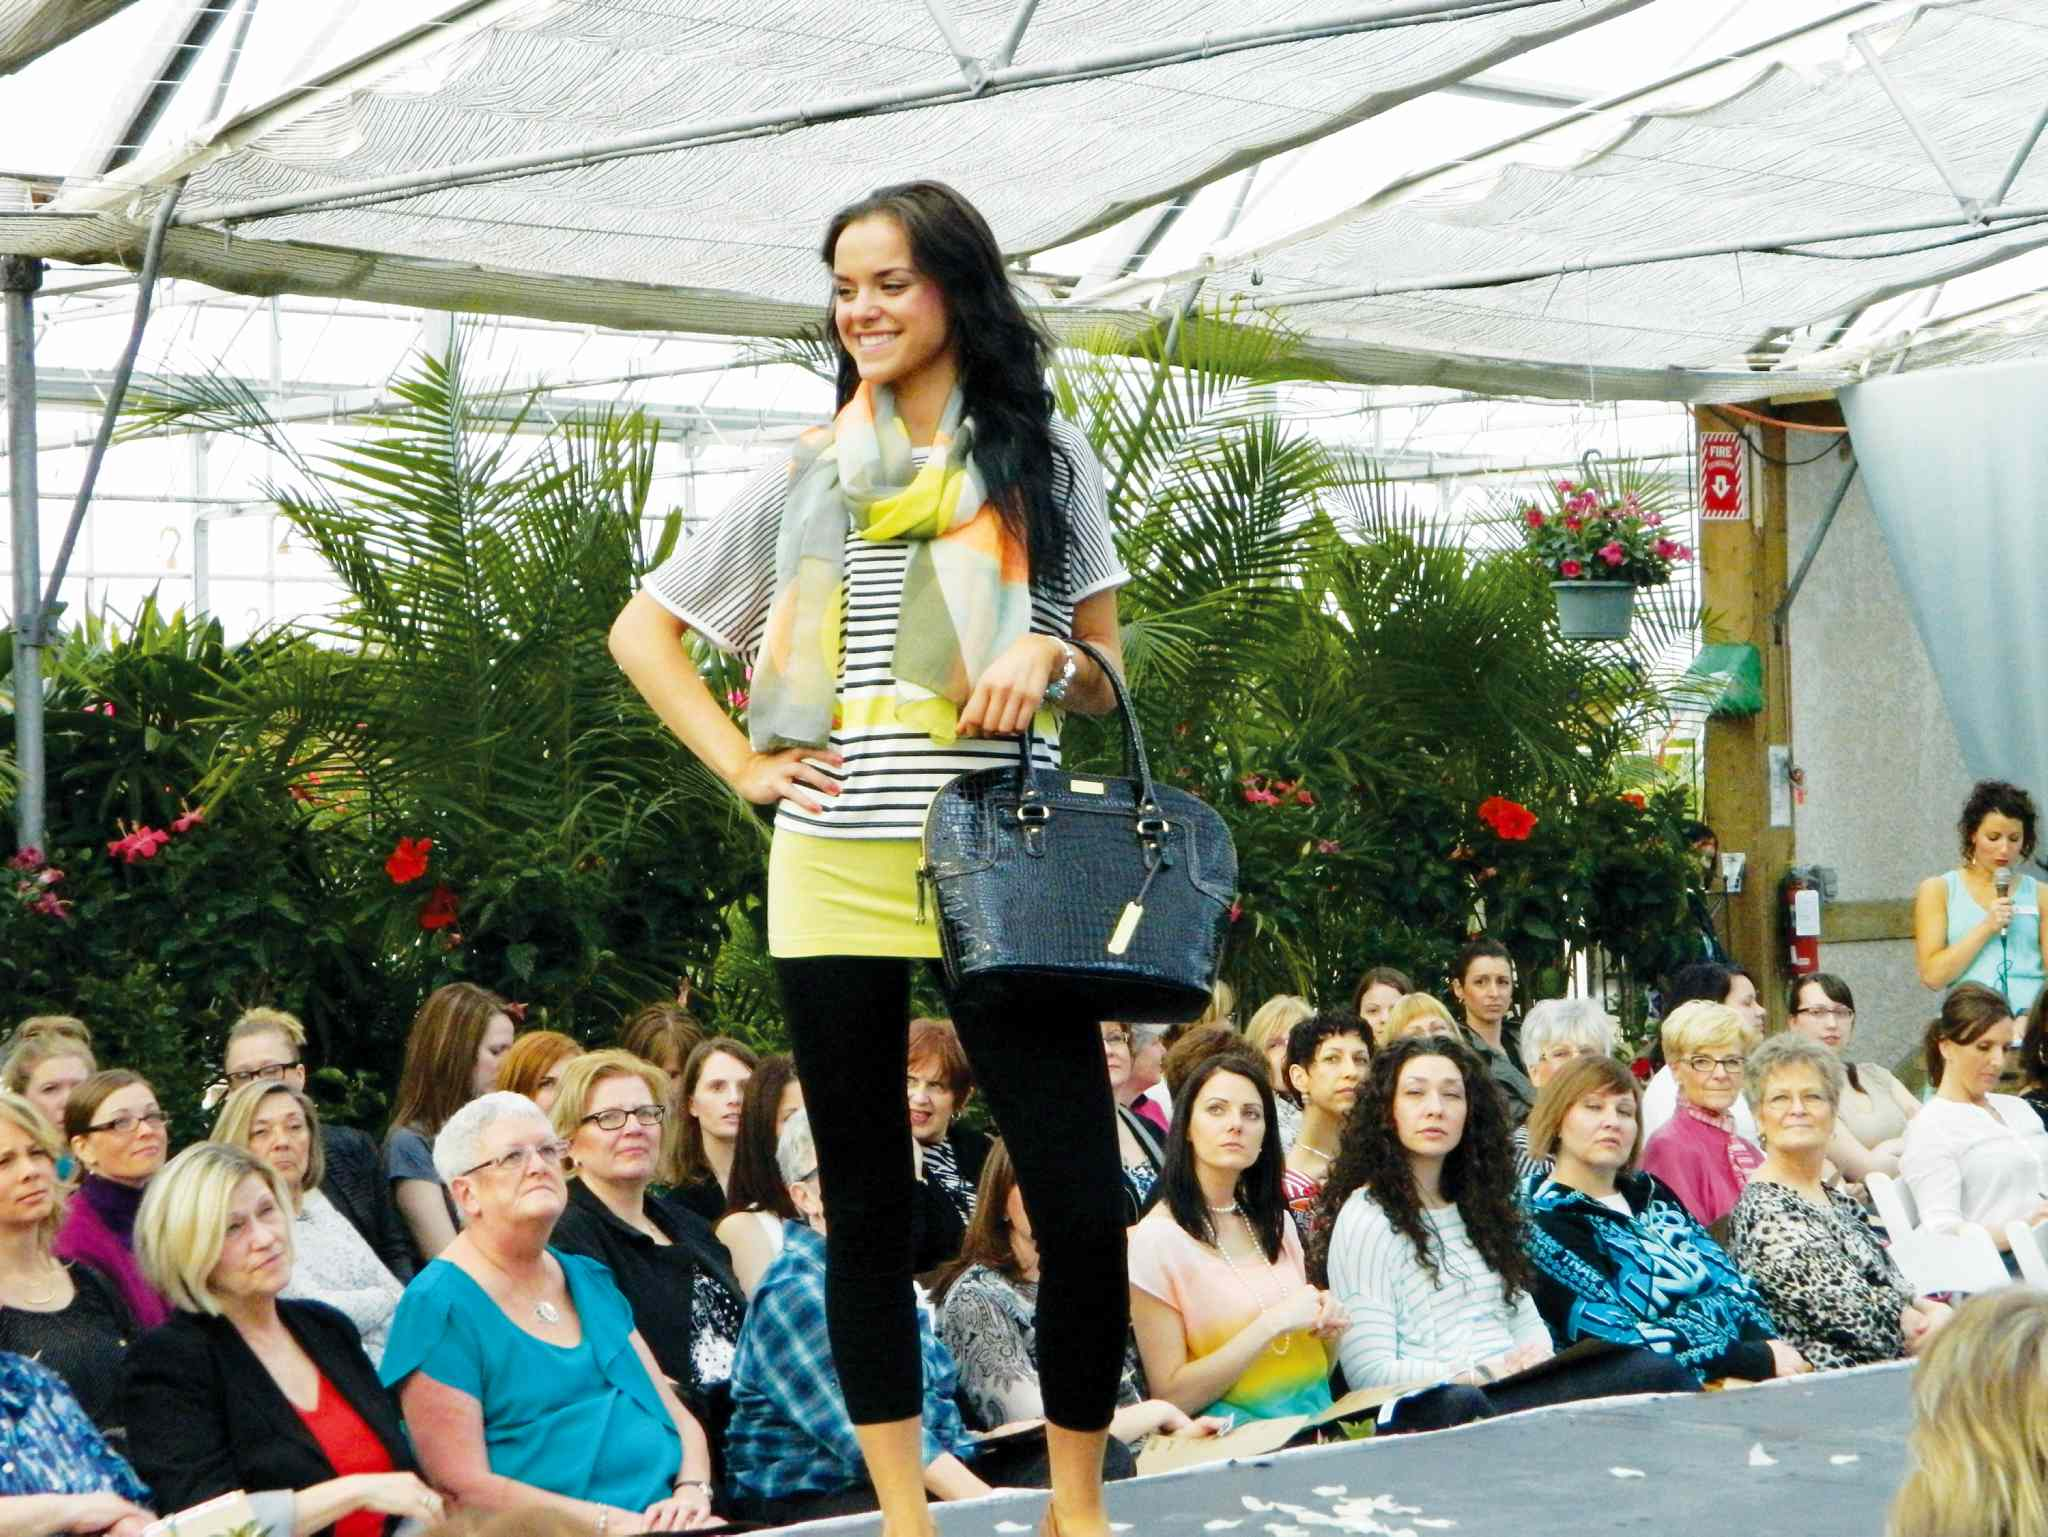 A model shows off some new fashions at one of the semi-annual Ladies' Night events held at Shelmerdine Garden Centre in support of Osborne House.